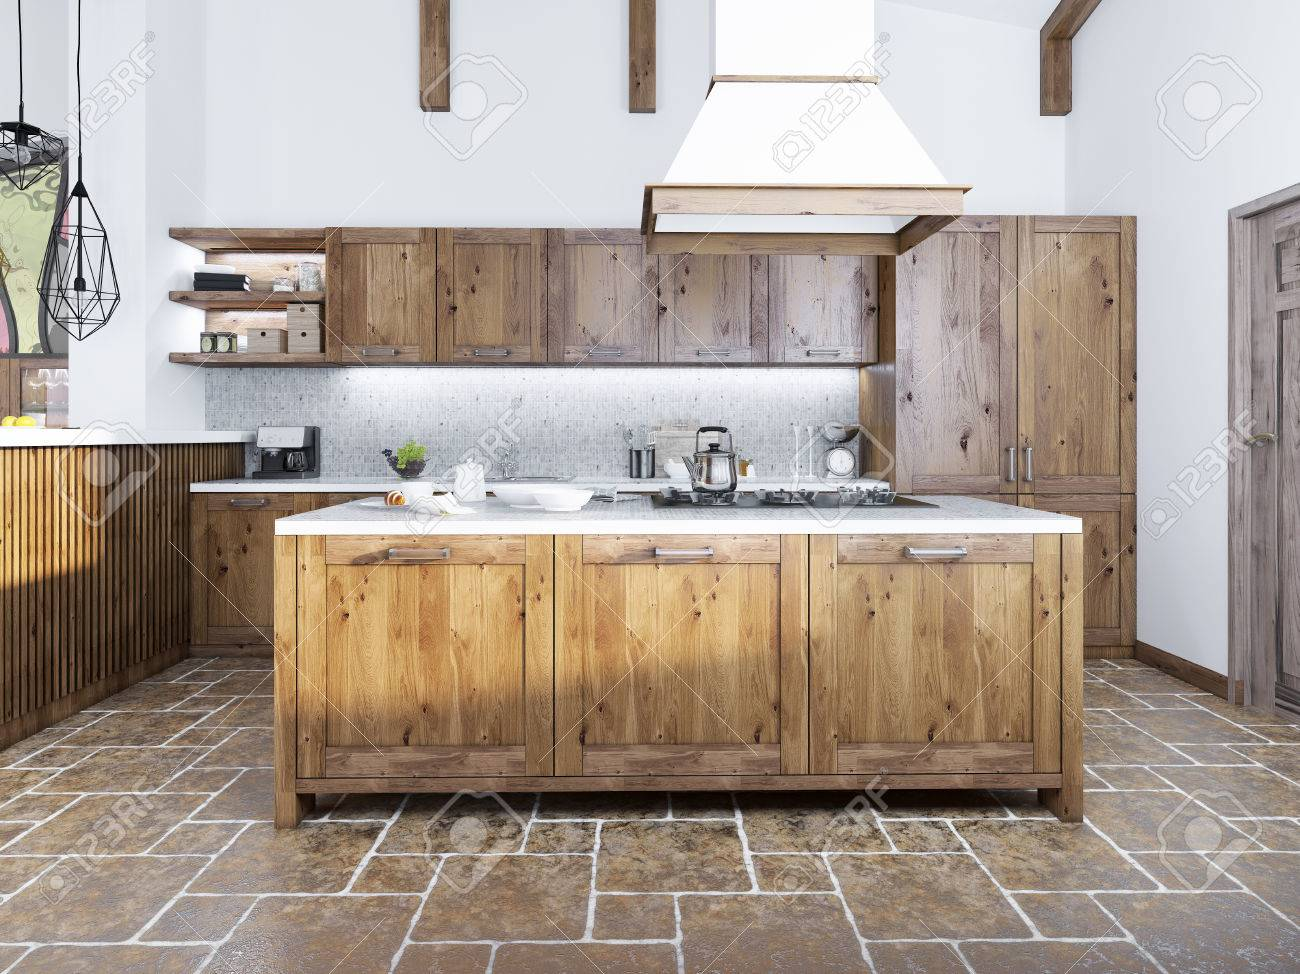 Modern kitchen in the loft style. Kitchen island with a hood..